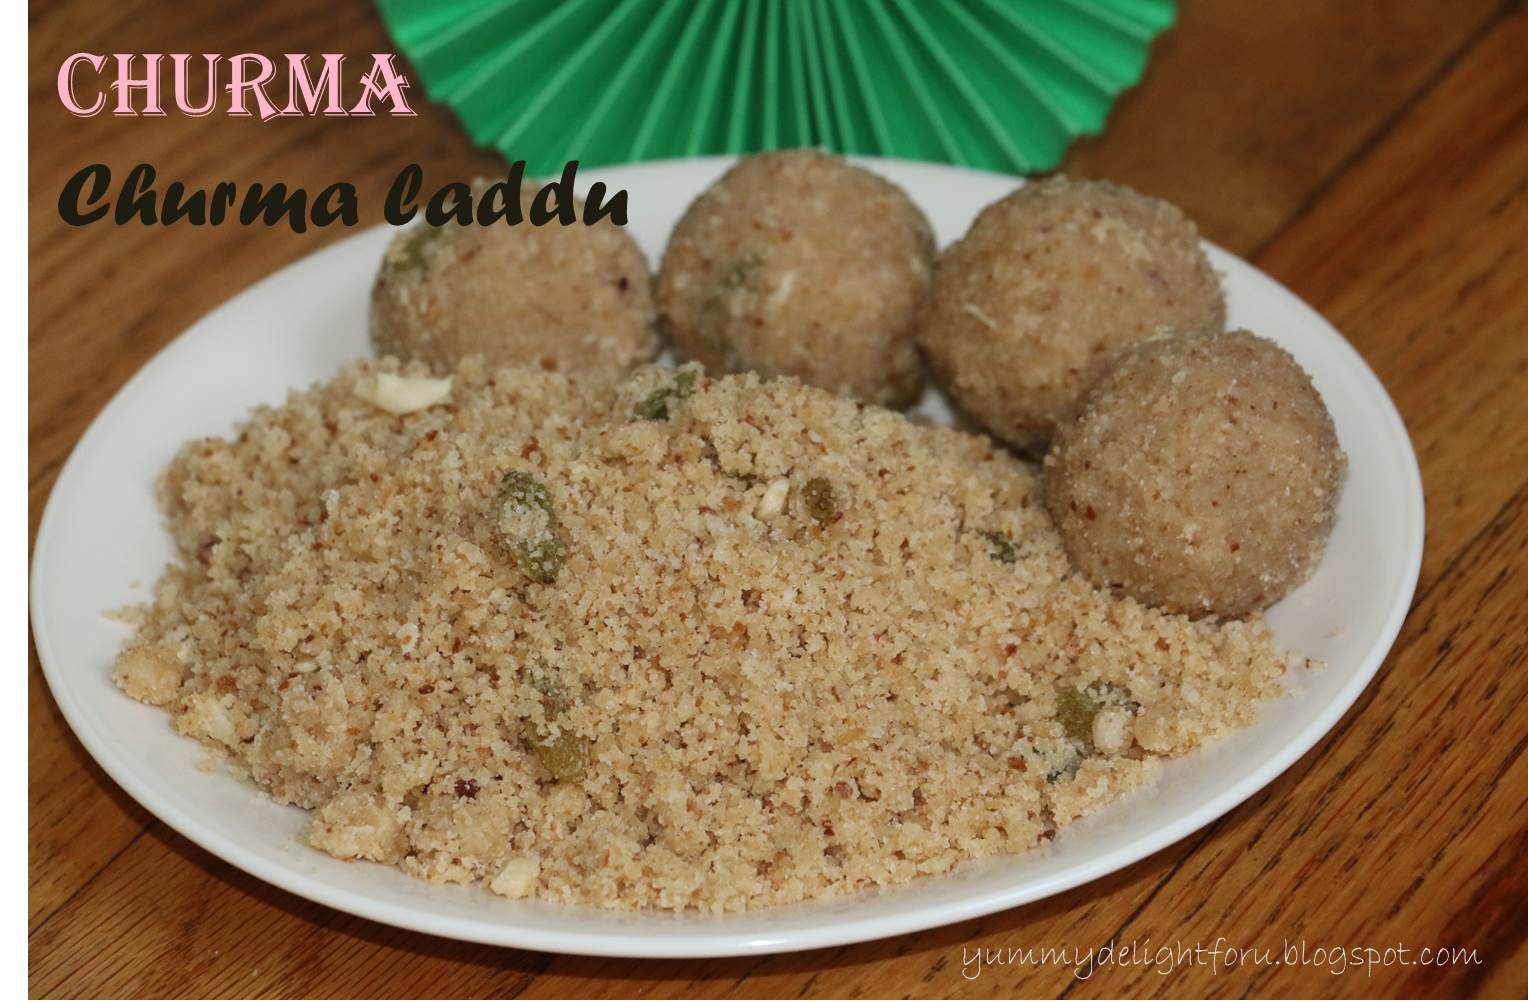 Yummy delight for u churma recipe how to make churma ladoo churma recipe how to make churma ladoo forumfinder Choice Image